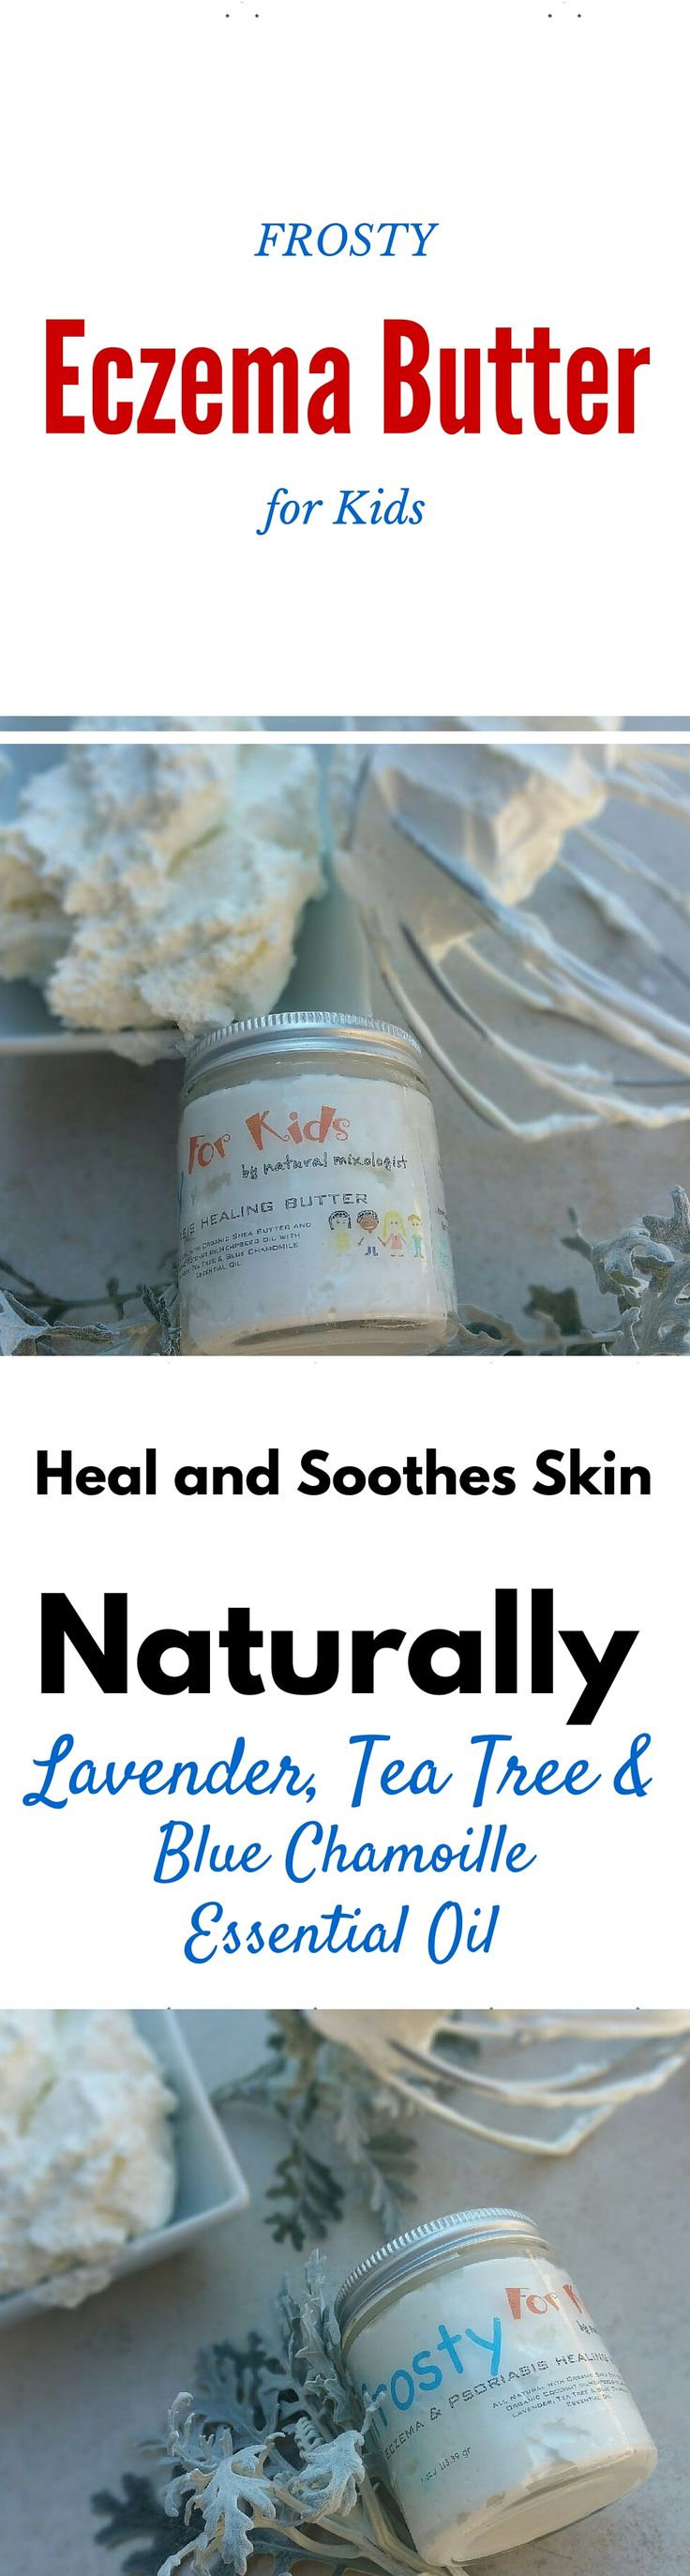 All Natural Healing Butter To Heal Kids Sensitive Skin Made With Lavender,  Tea Tree